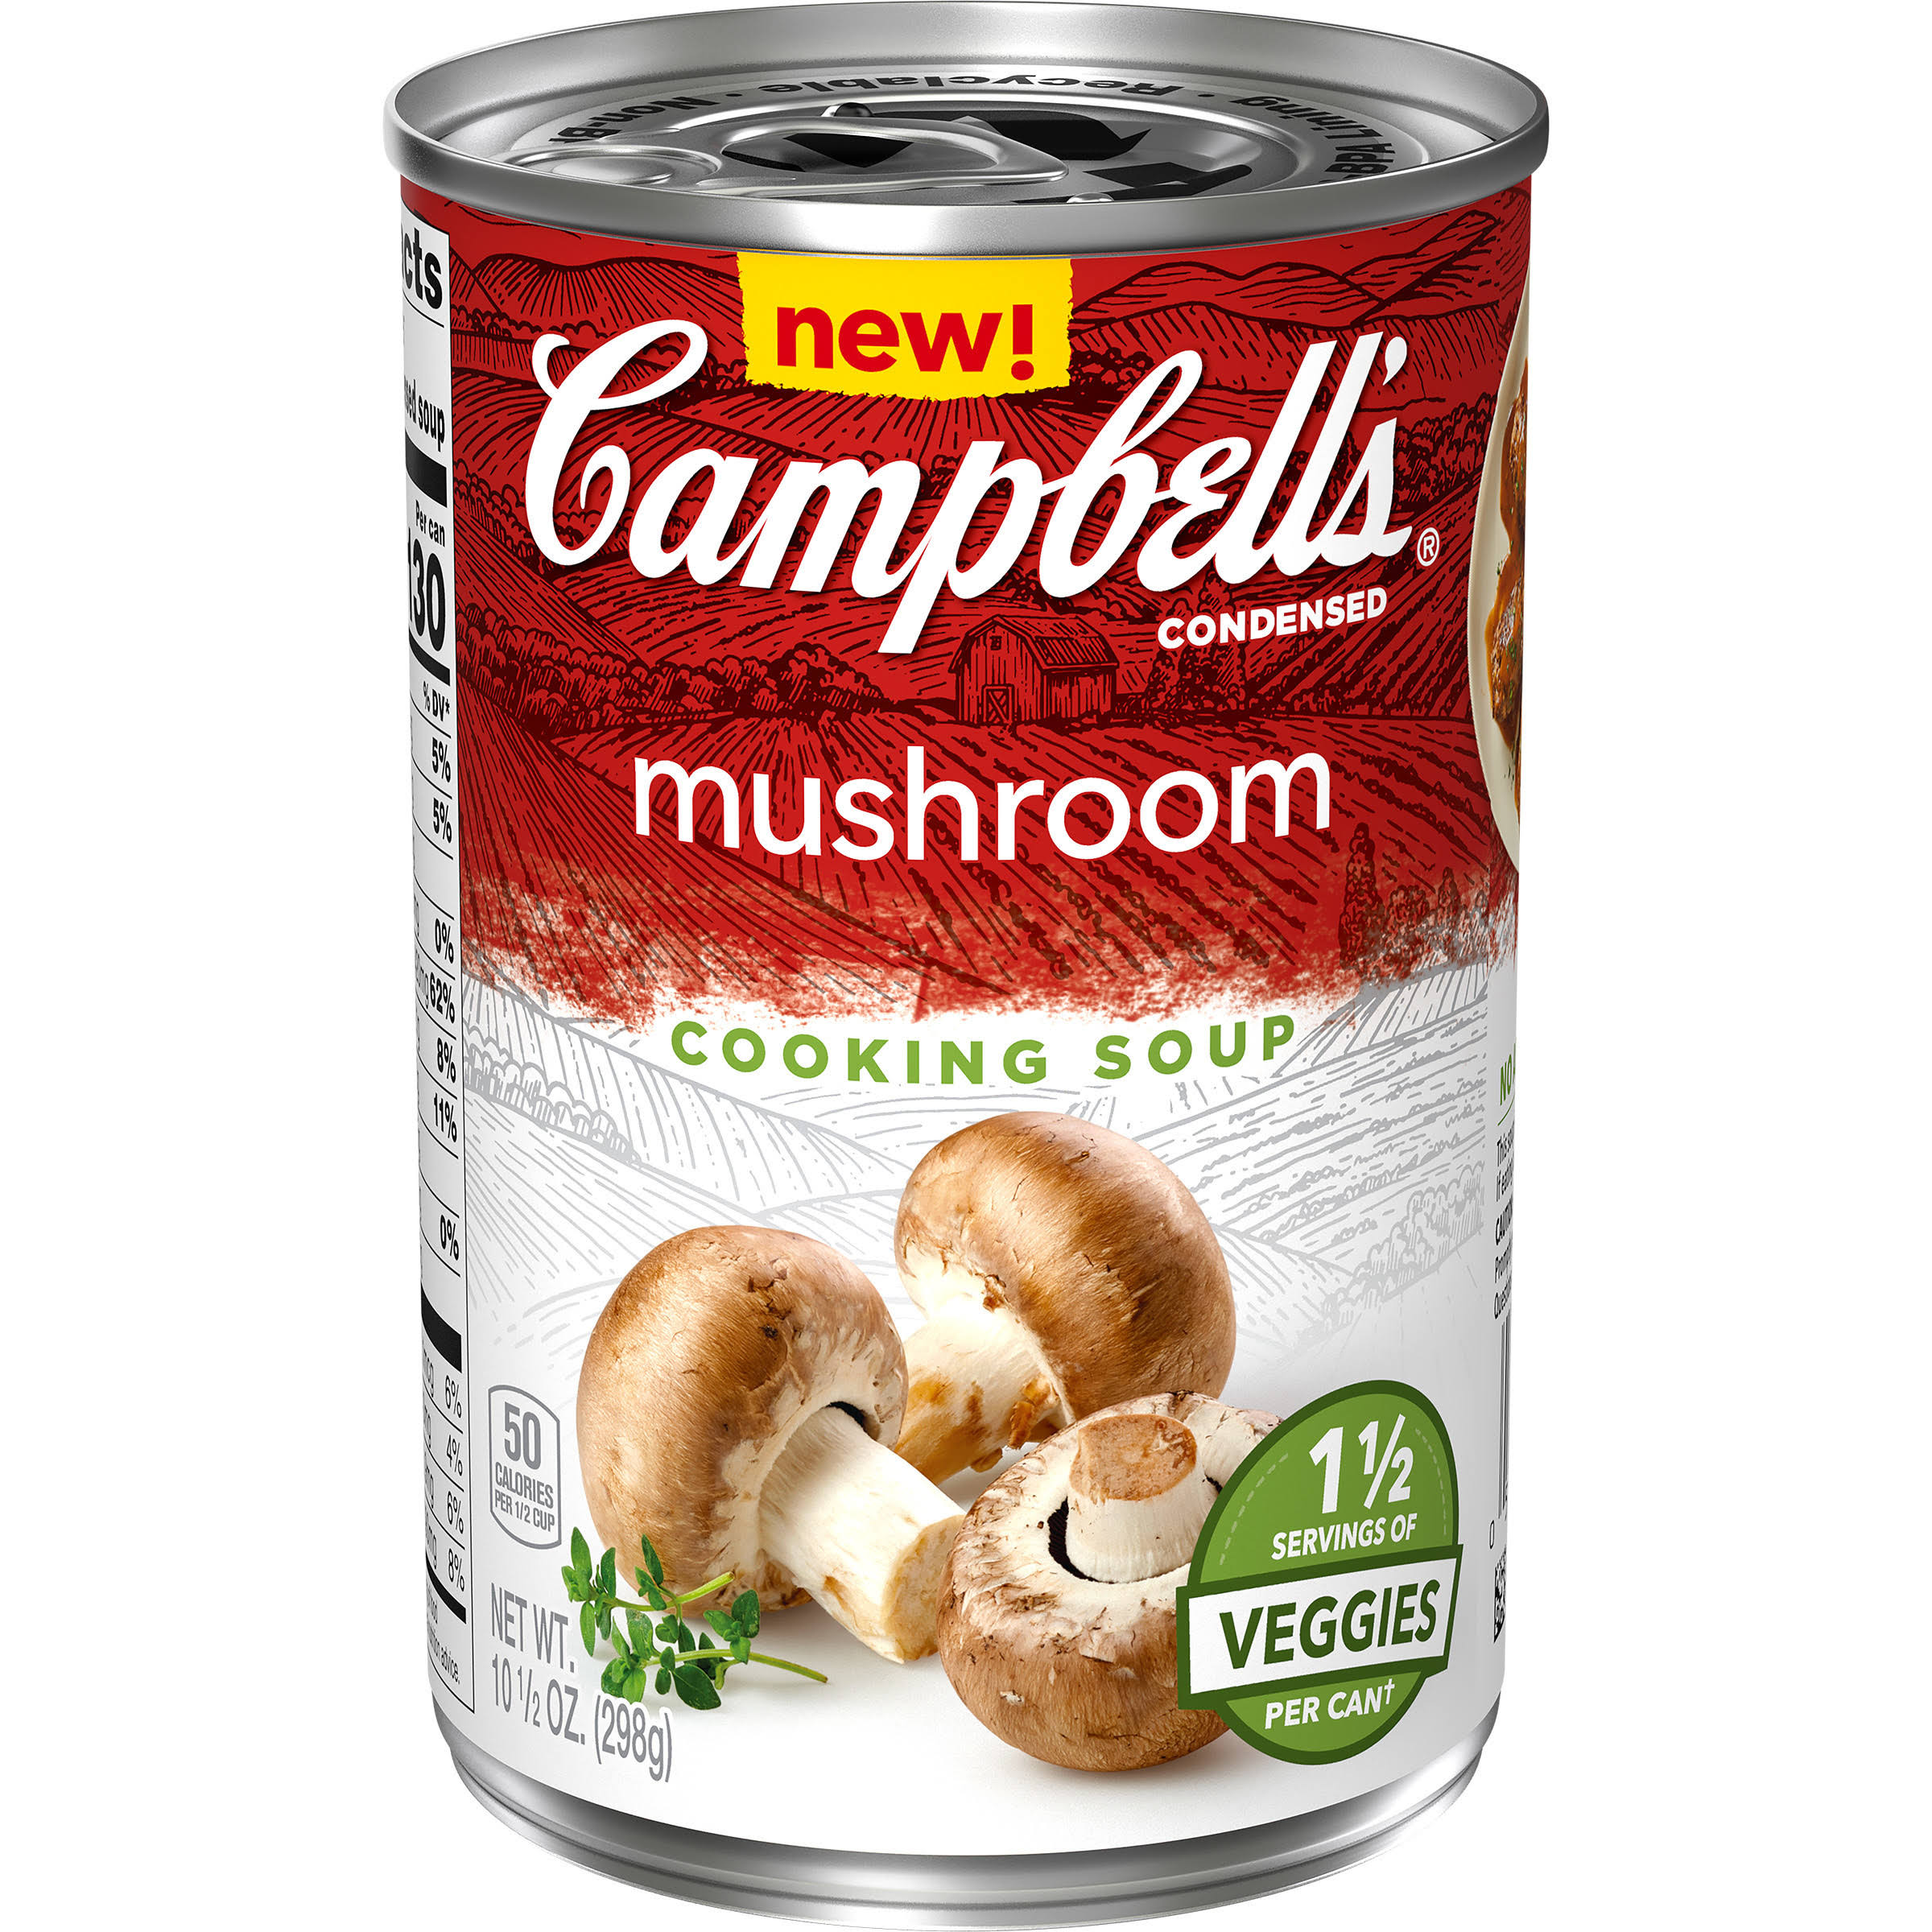 Campbell's Vegetable Condensed Cooking Mushroom Soup - 10.5oz